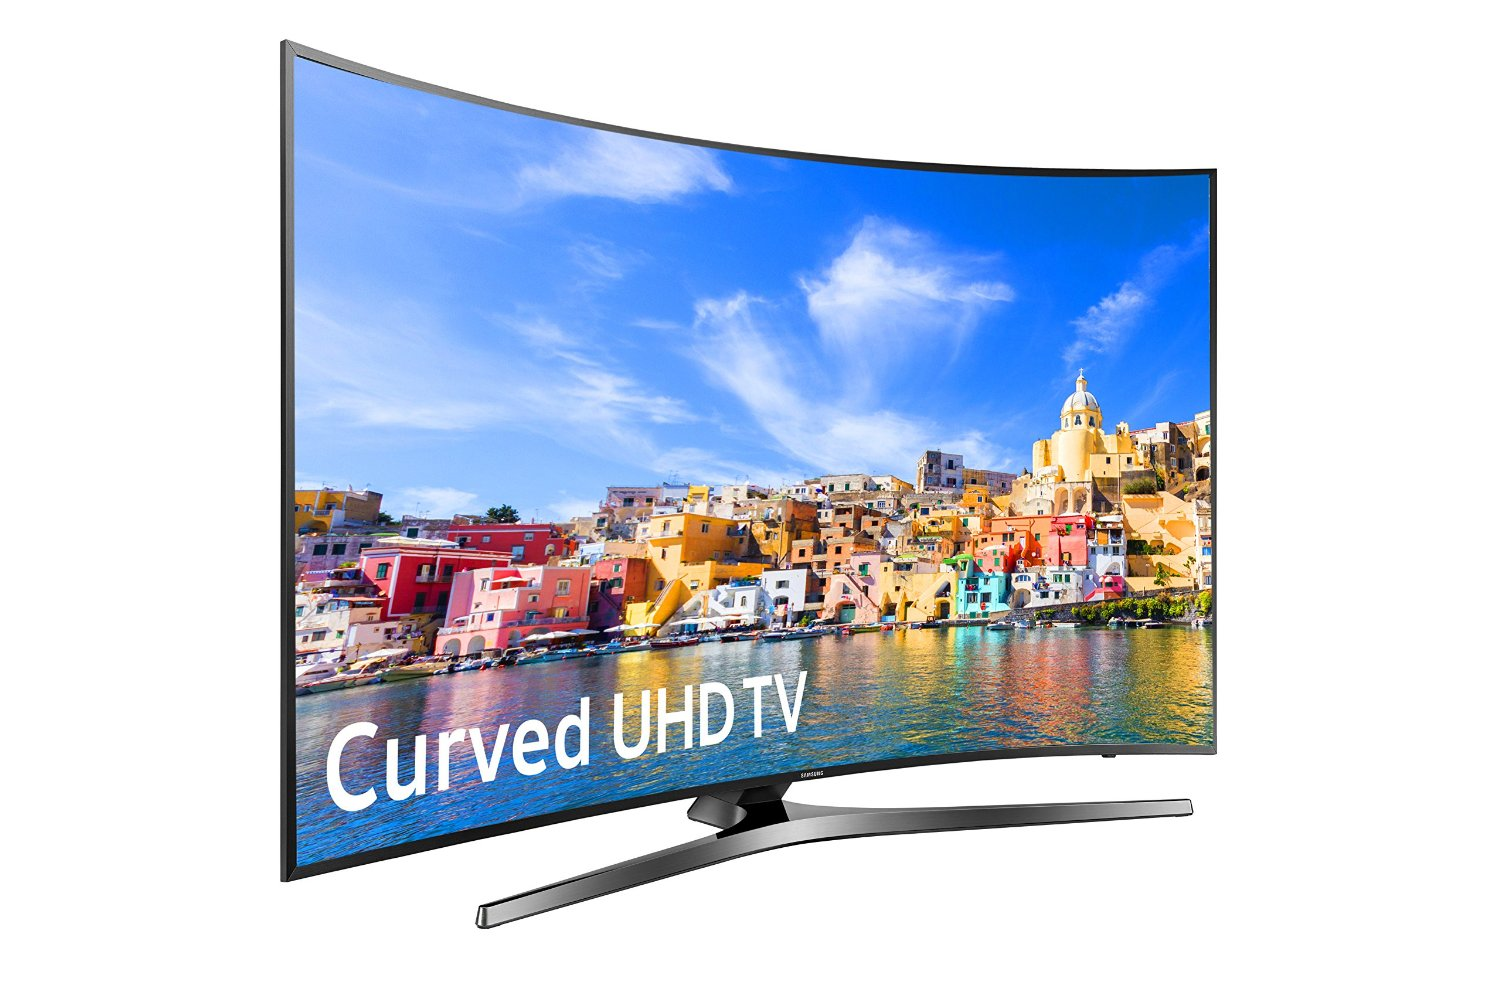 b6161207eaca7 Samsung UN78KU7500 Curved 78-Inch 4K Ultra HD Smart LED TV (2016 ...